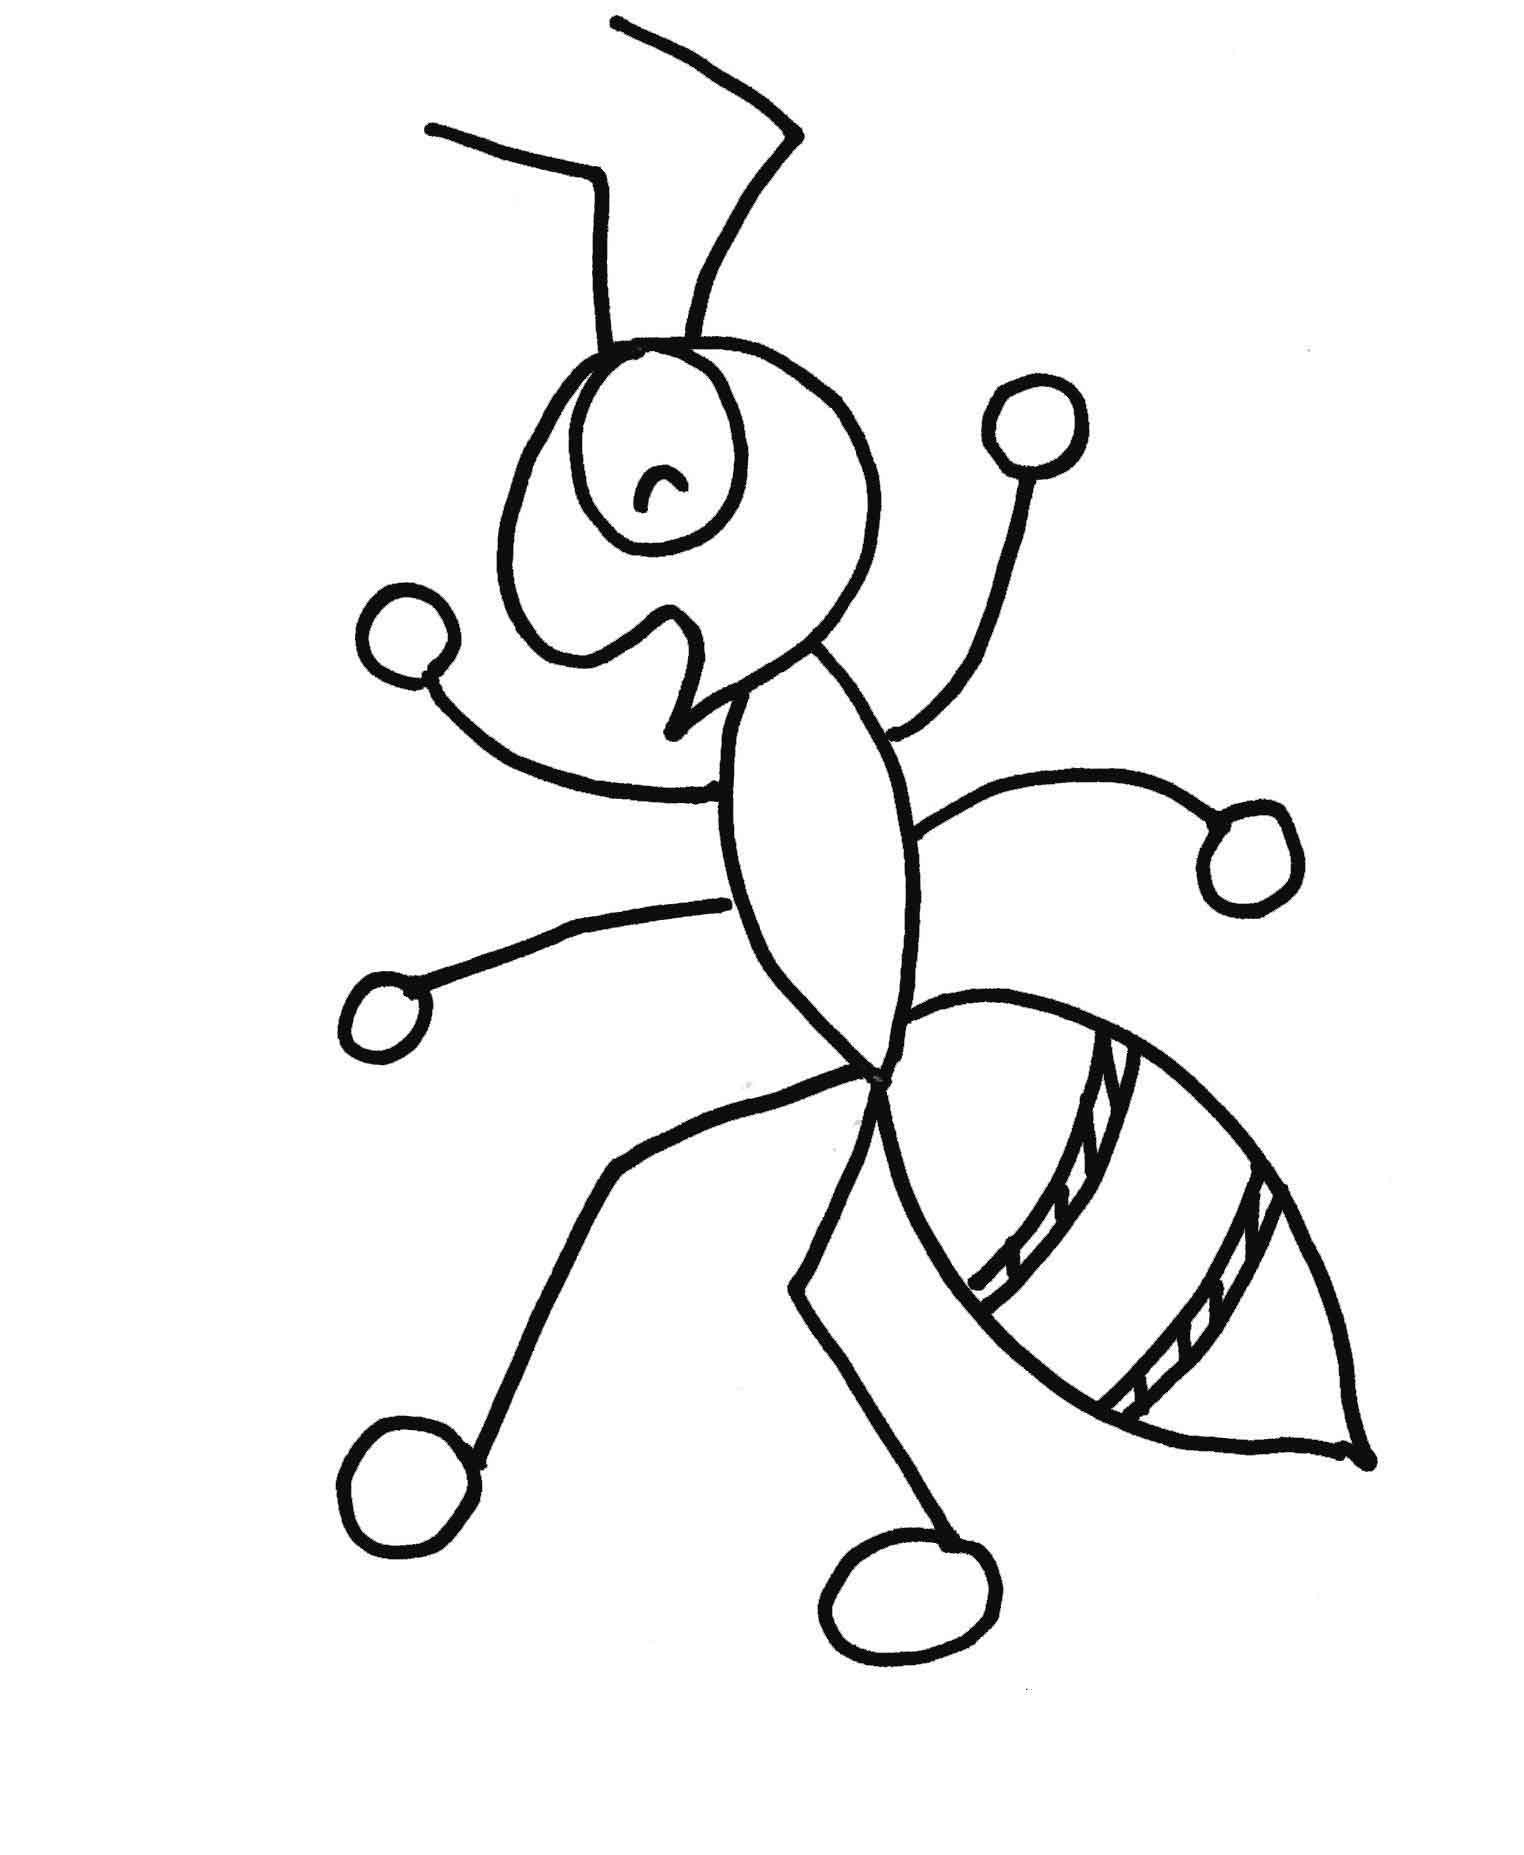 Ant clipart line drawing. Drawings of ants black